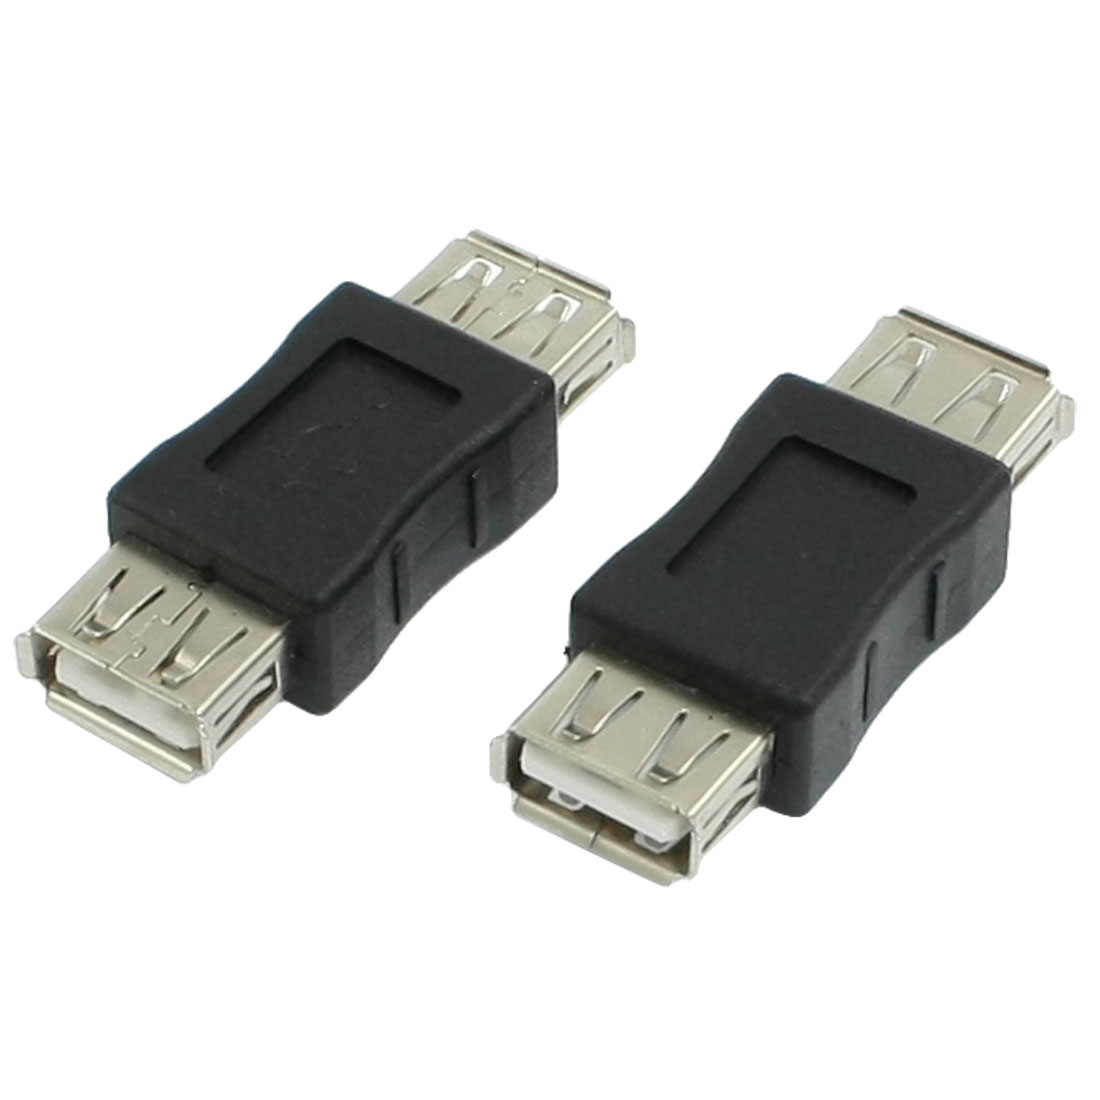 2 Pcs Computer Black USB Type A Female to Female Plug Adapter Connectors